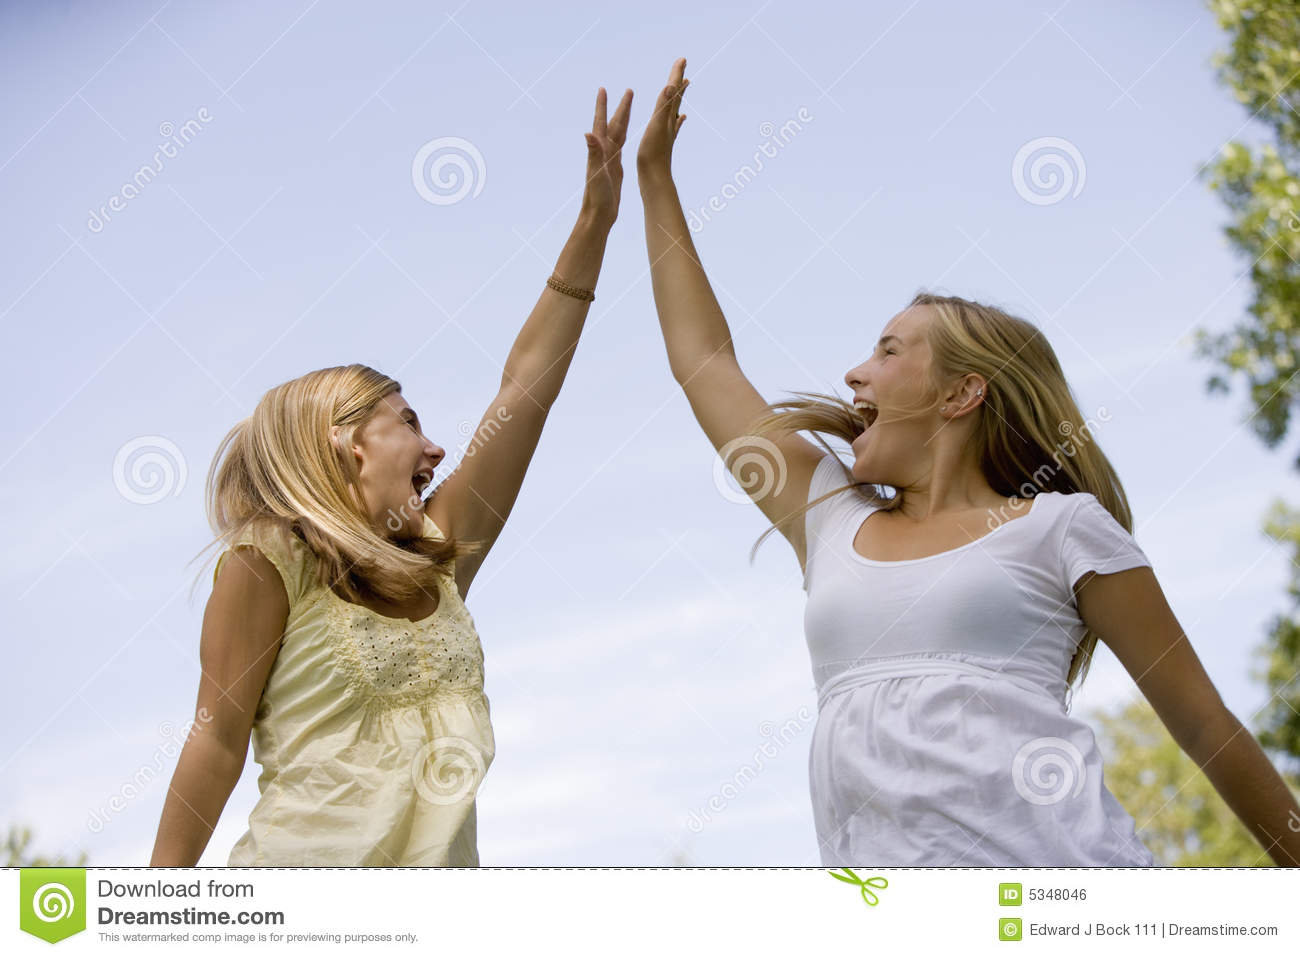 teenage-girls-high-five-5348046.jpg